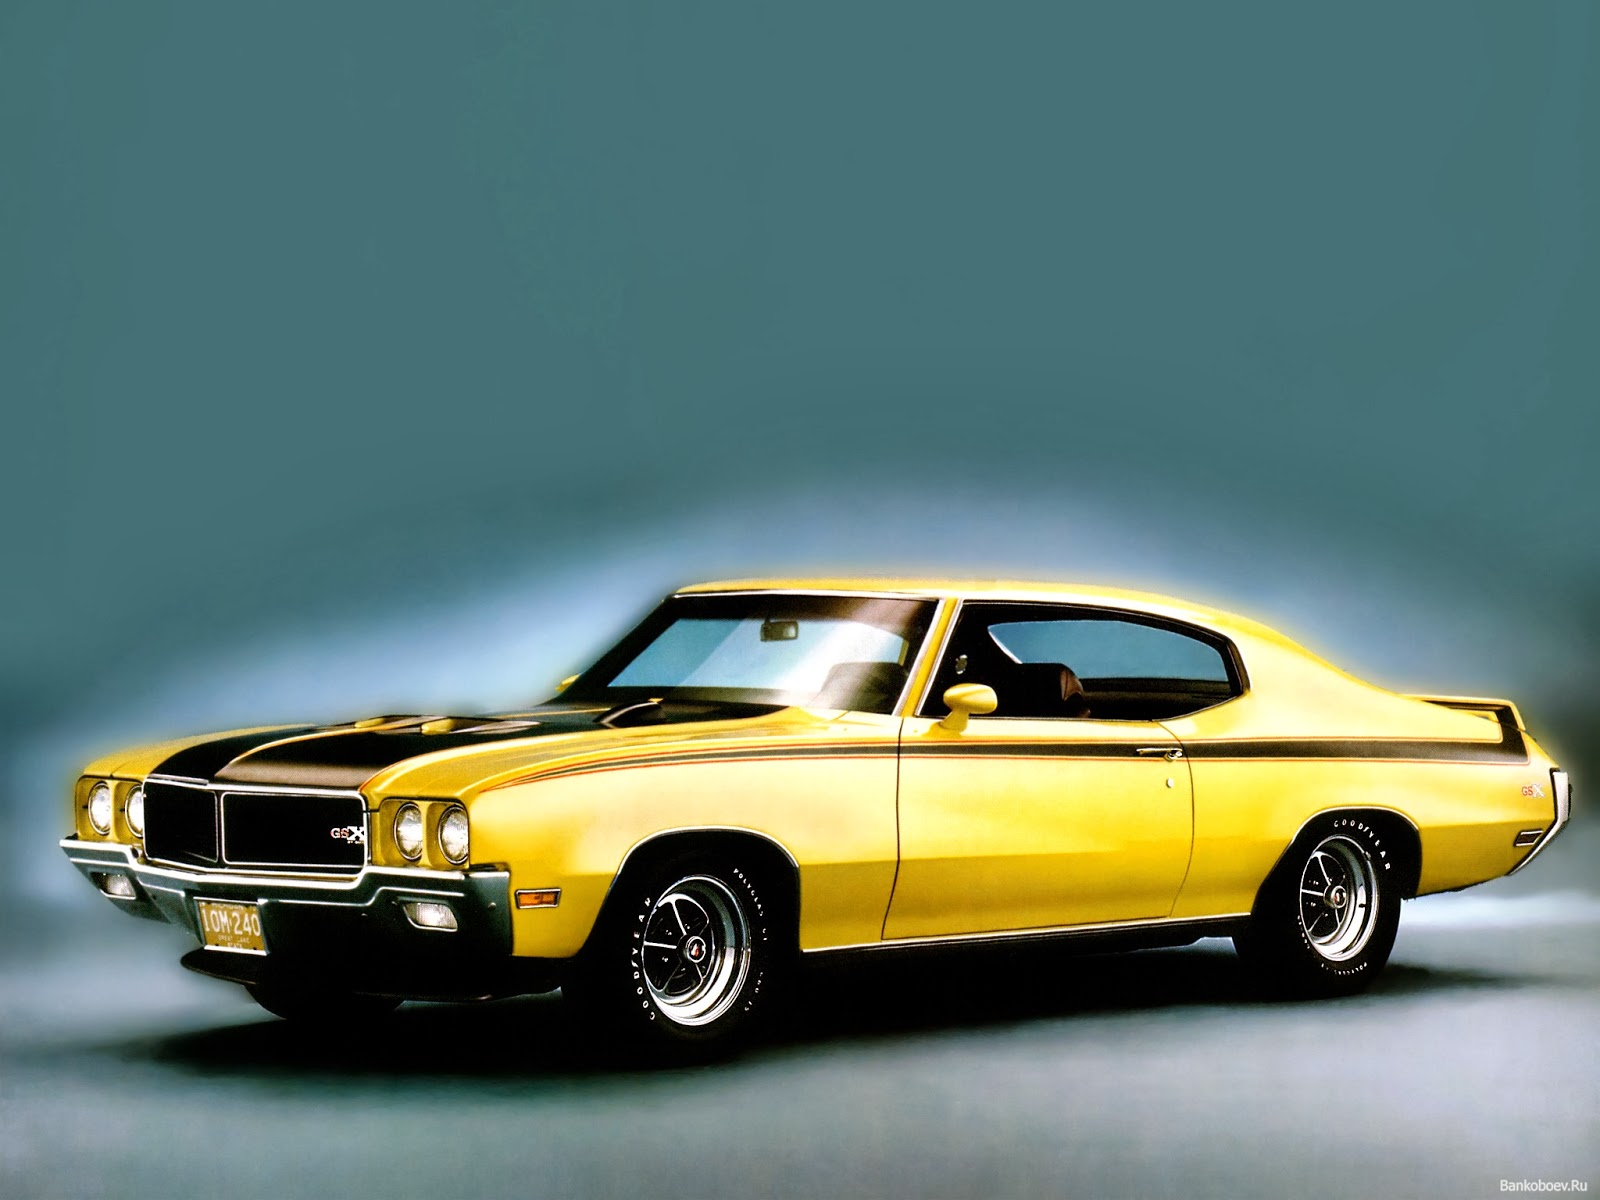 The Best Old Muscle cars 1970 Buick GSX